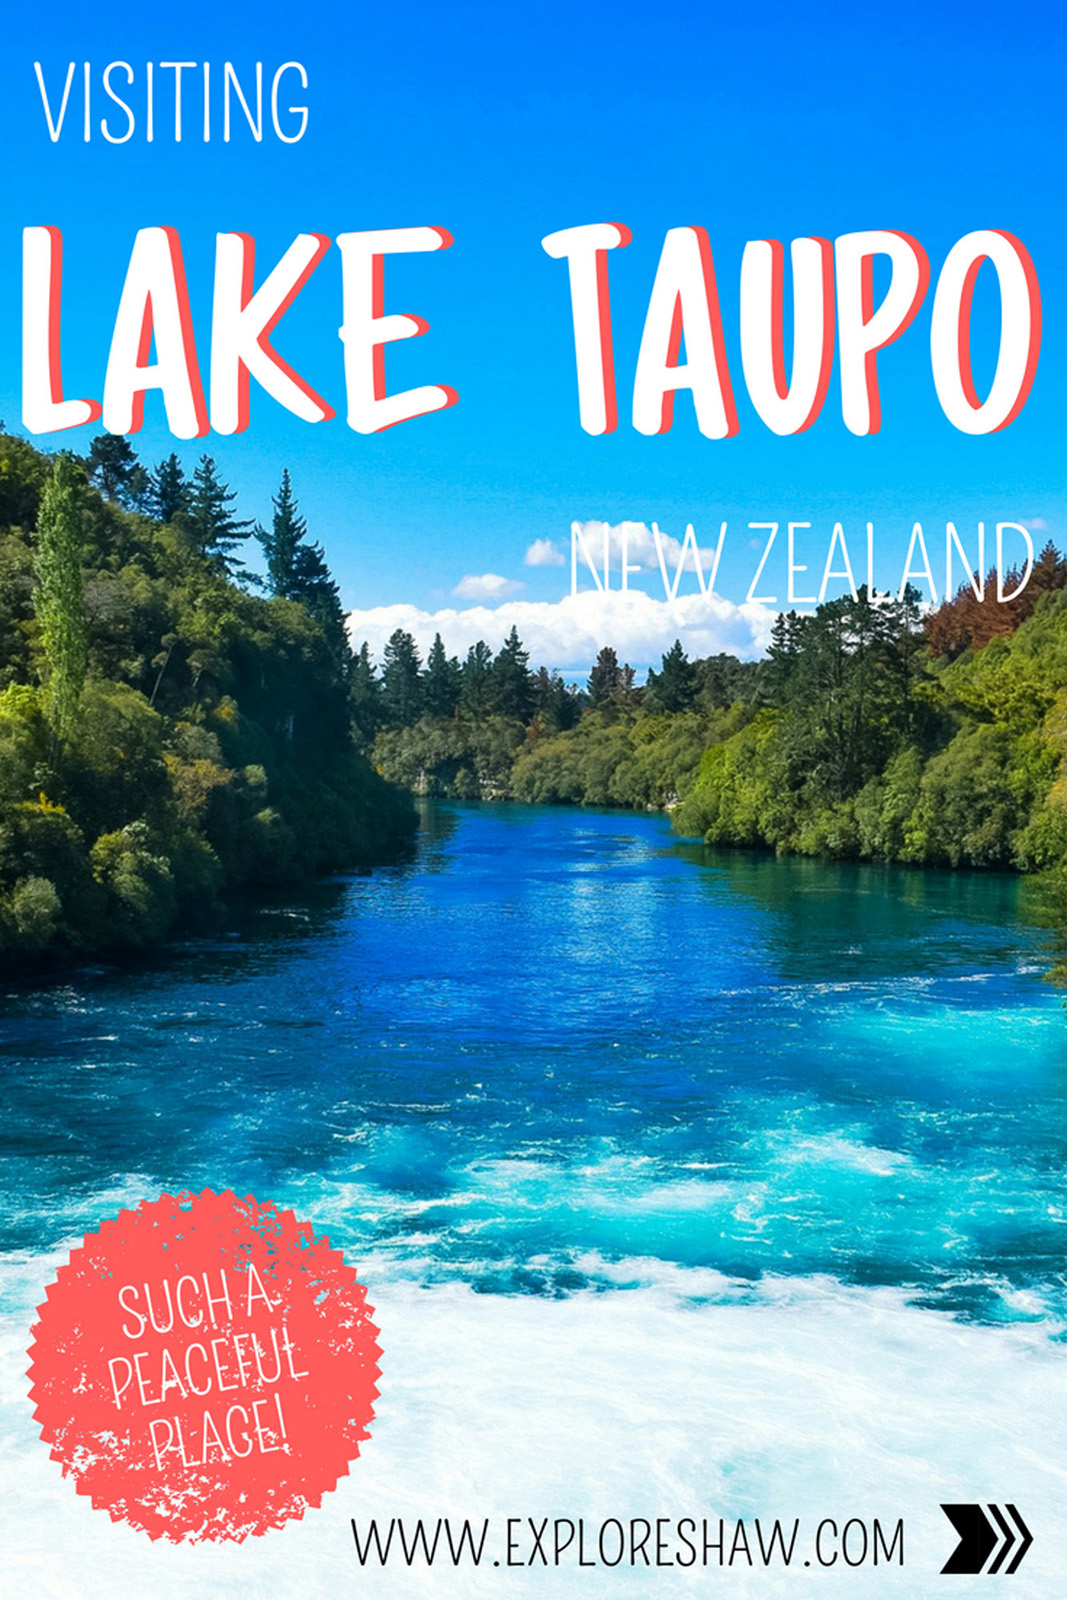 VISITING LAKE TAUPO